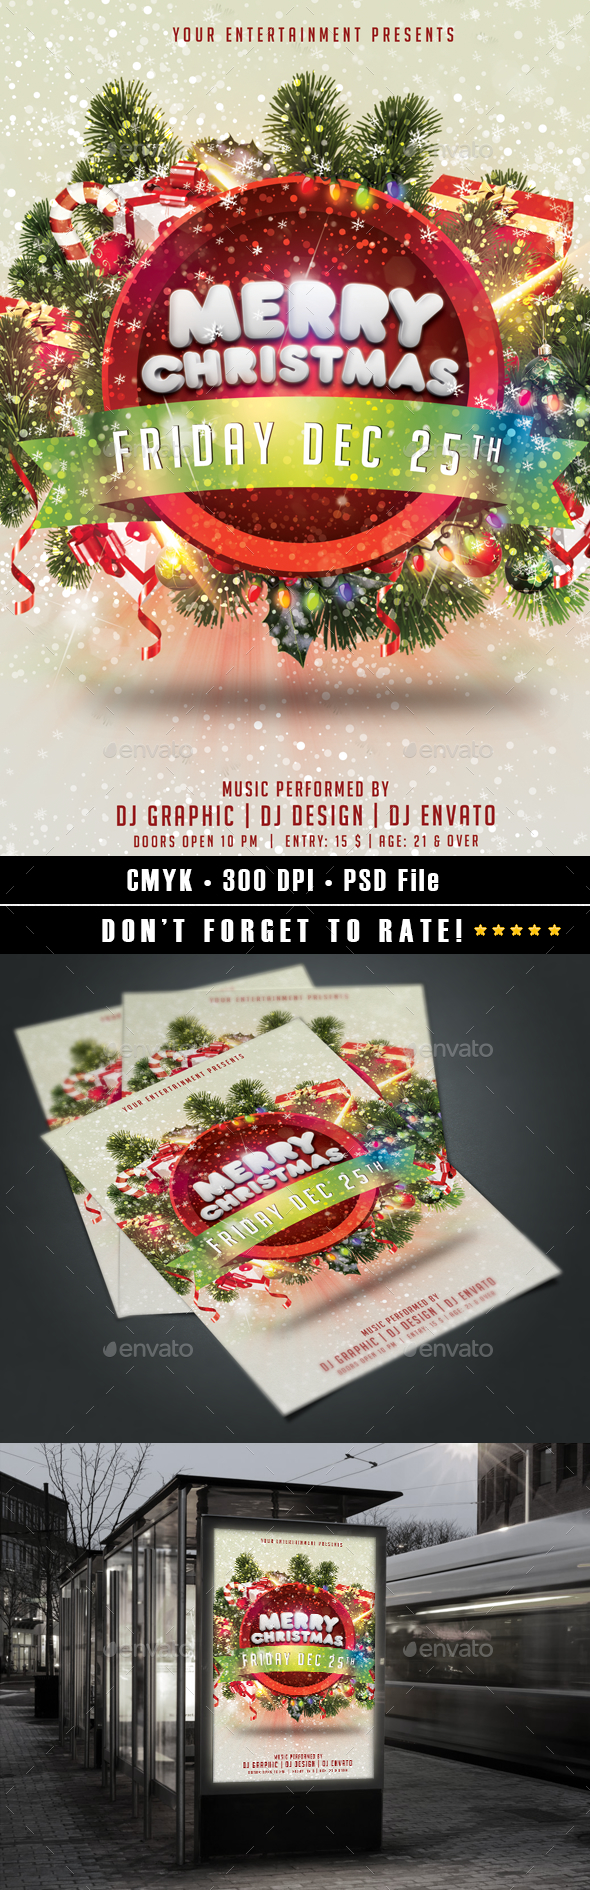 Merry Christmas flyer v2 - Holidays Events